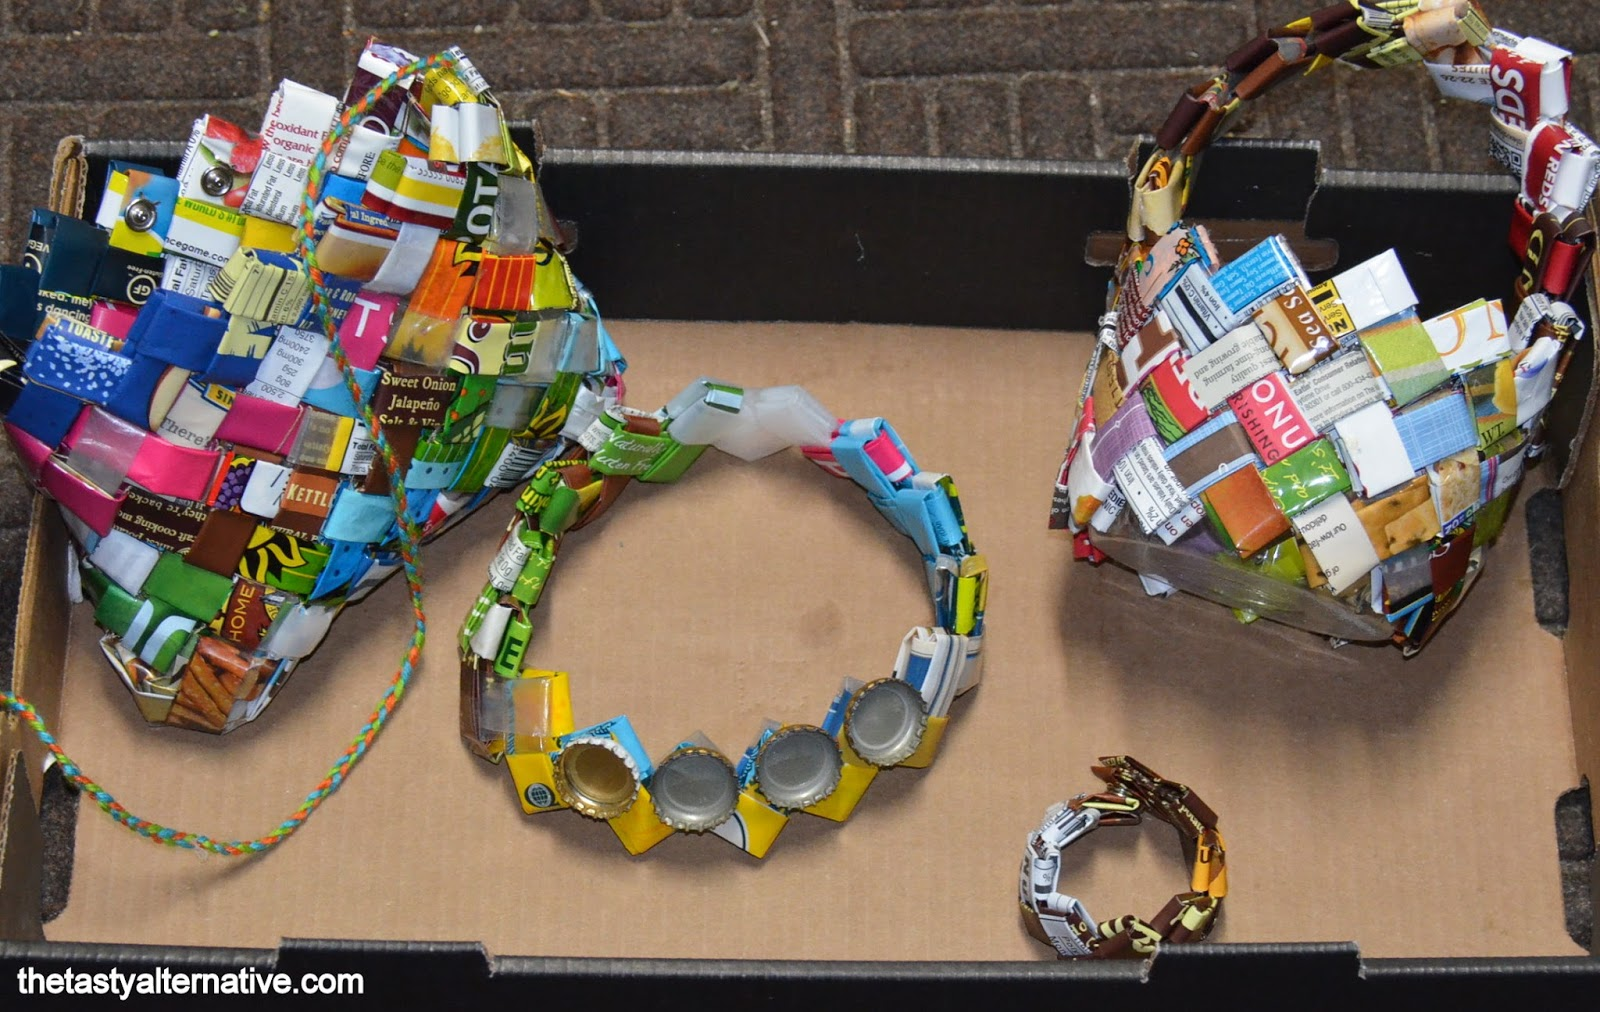 Waste material activity easy arts and crafts ideas for Waste material of things